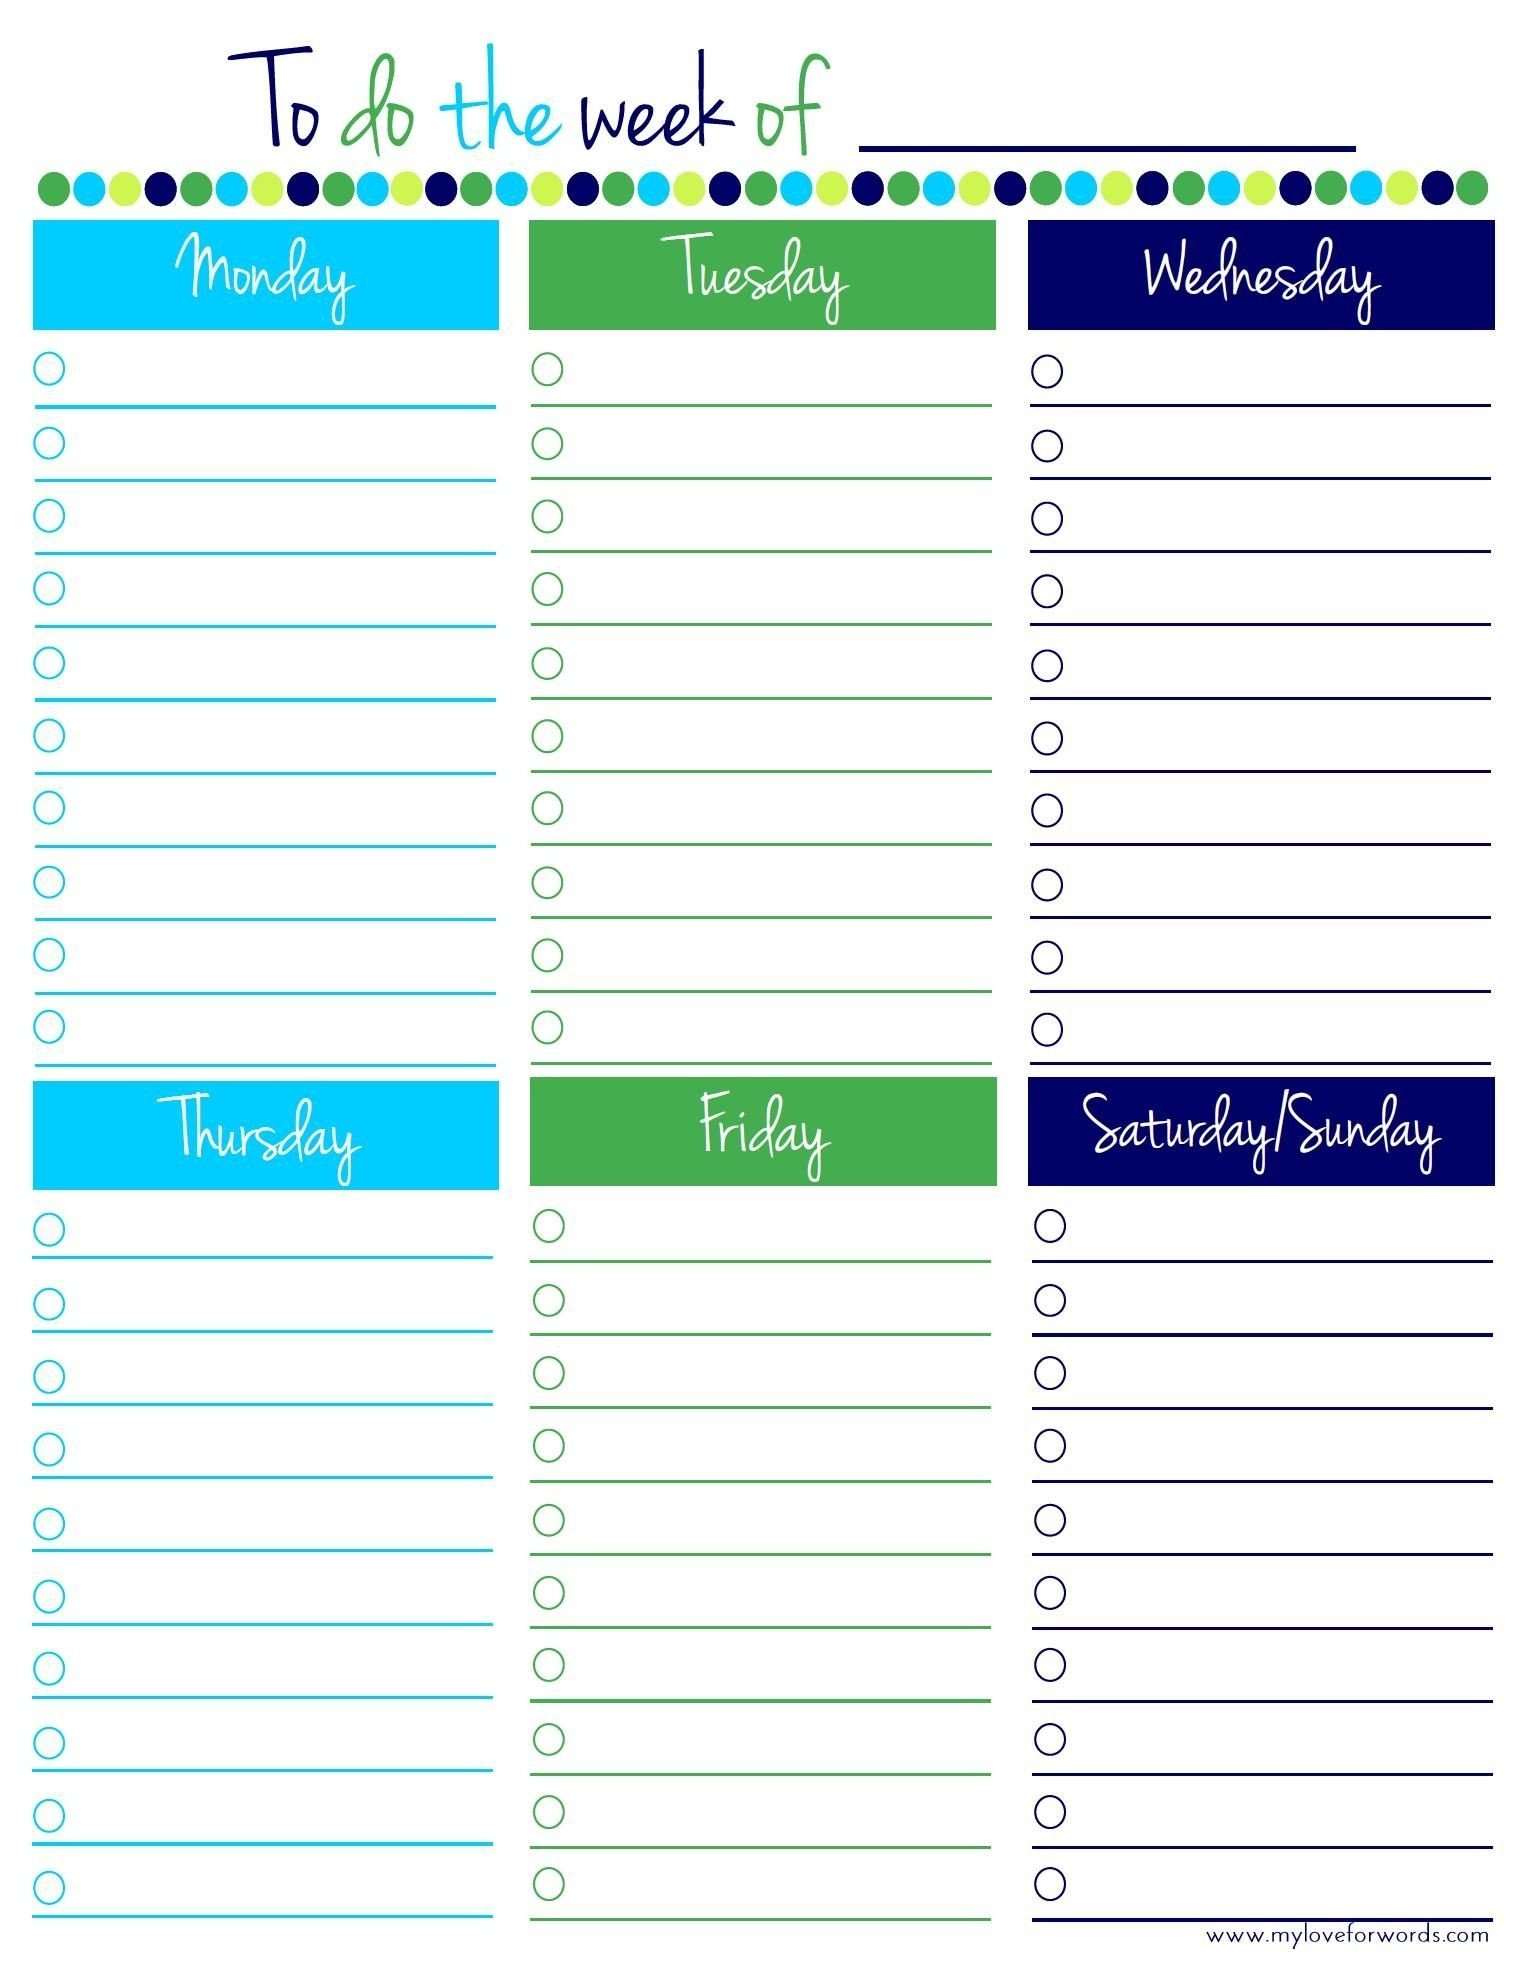 Free Weekly Planner Template Monday To Friday – Template Mon – Fri Calender Layout Download